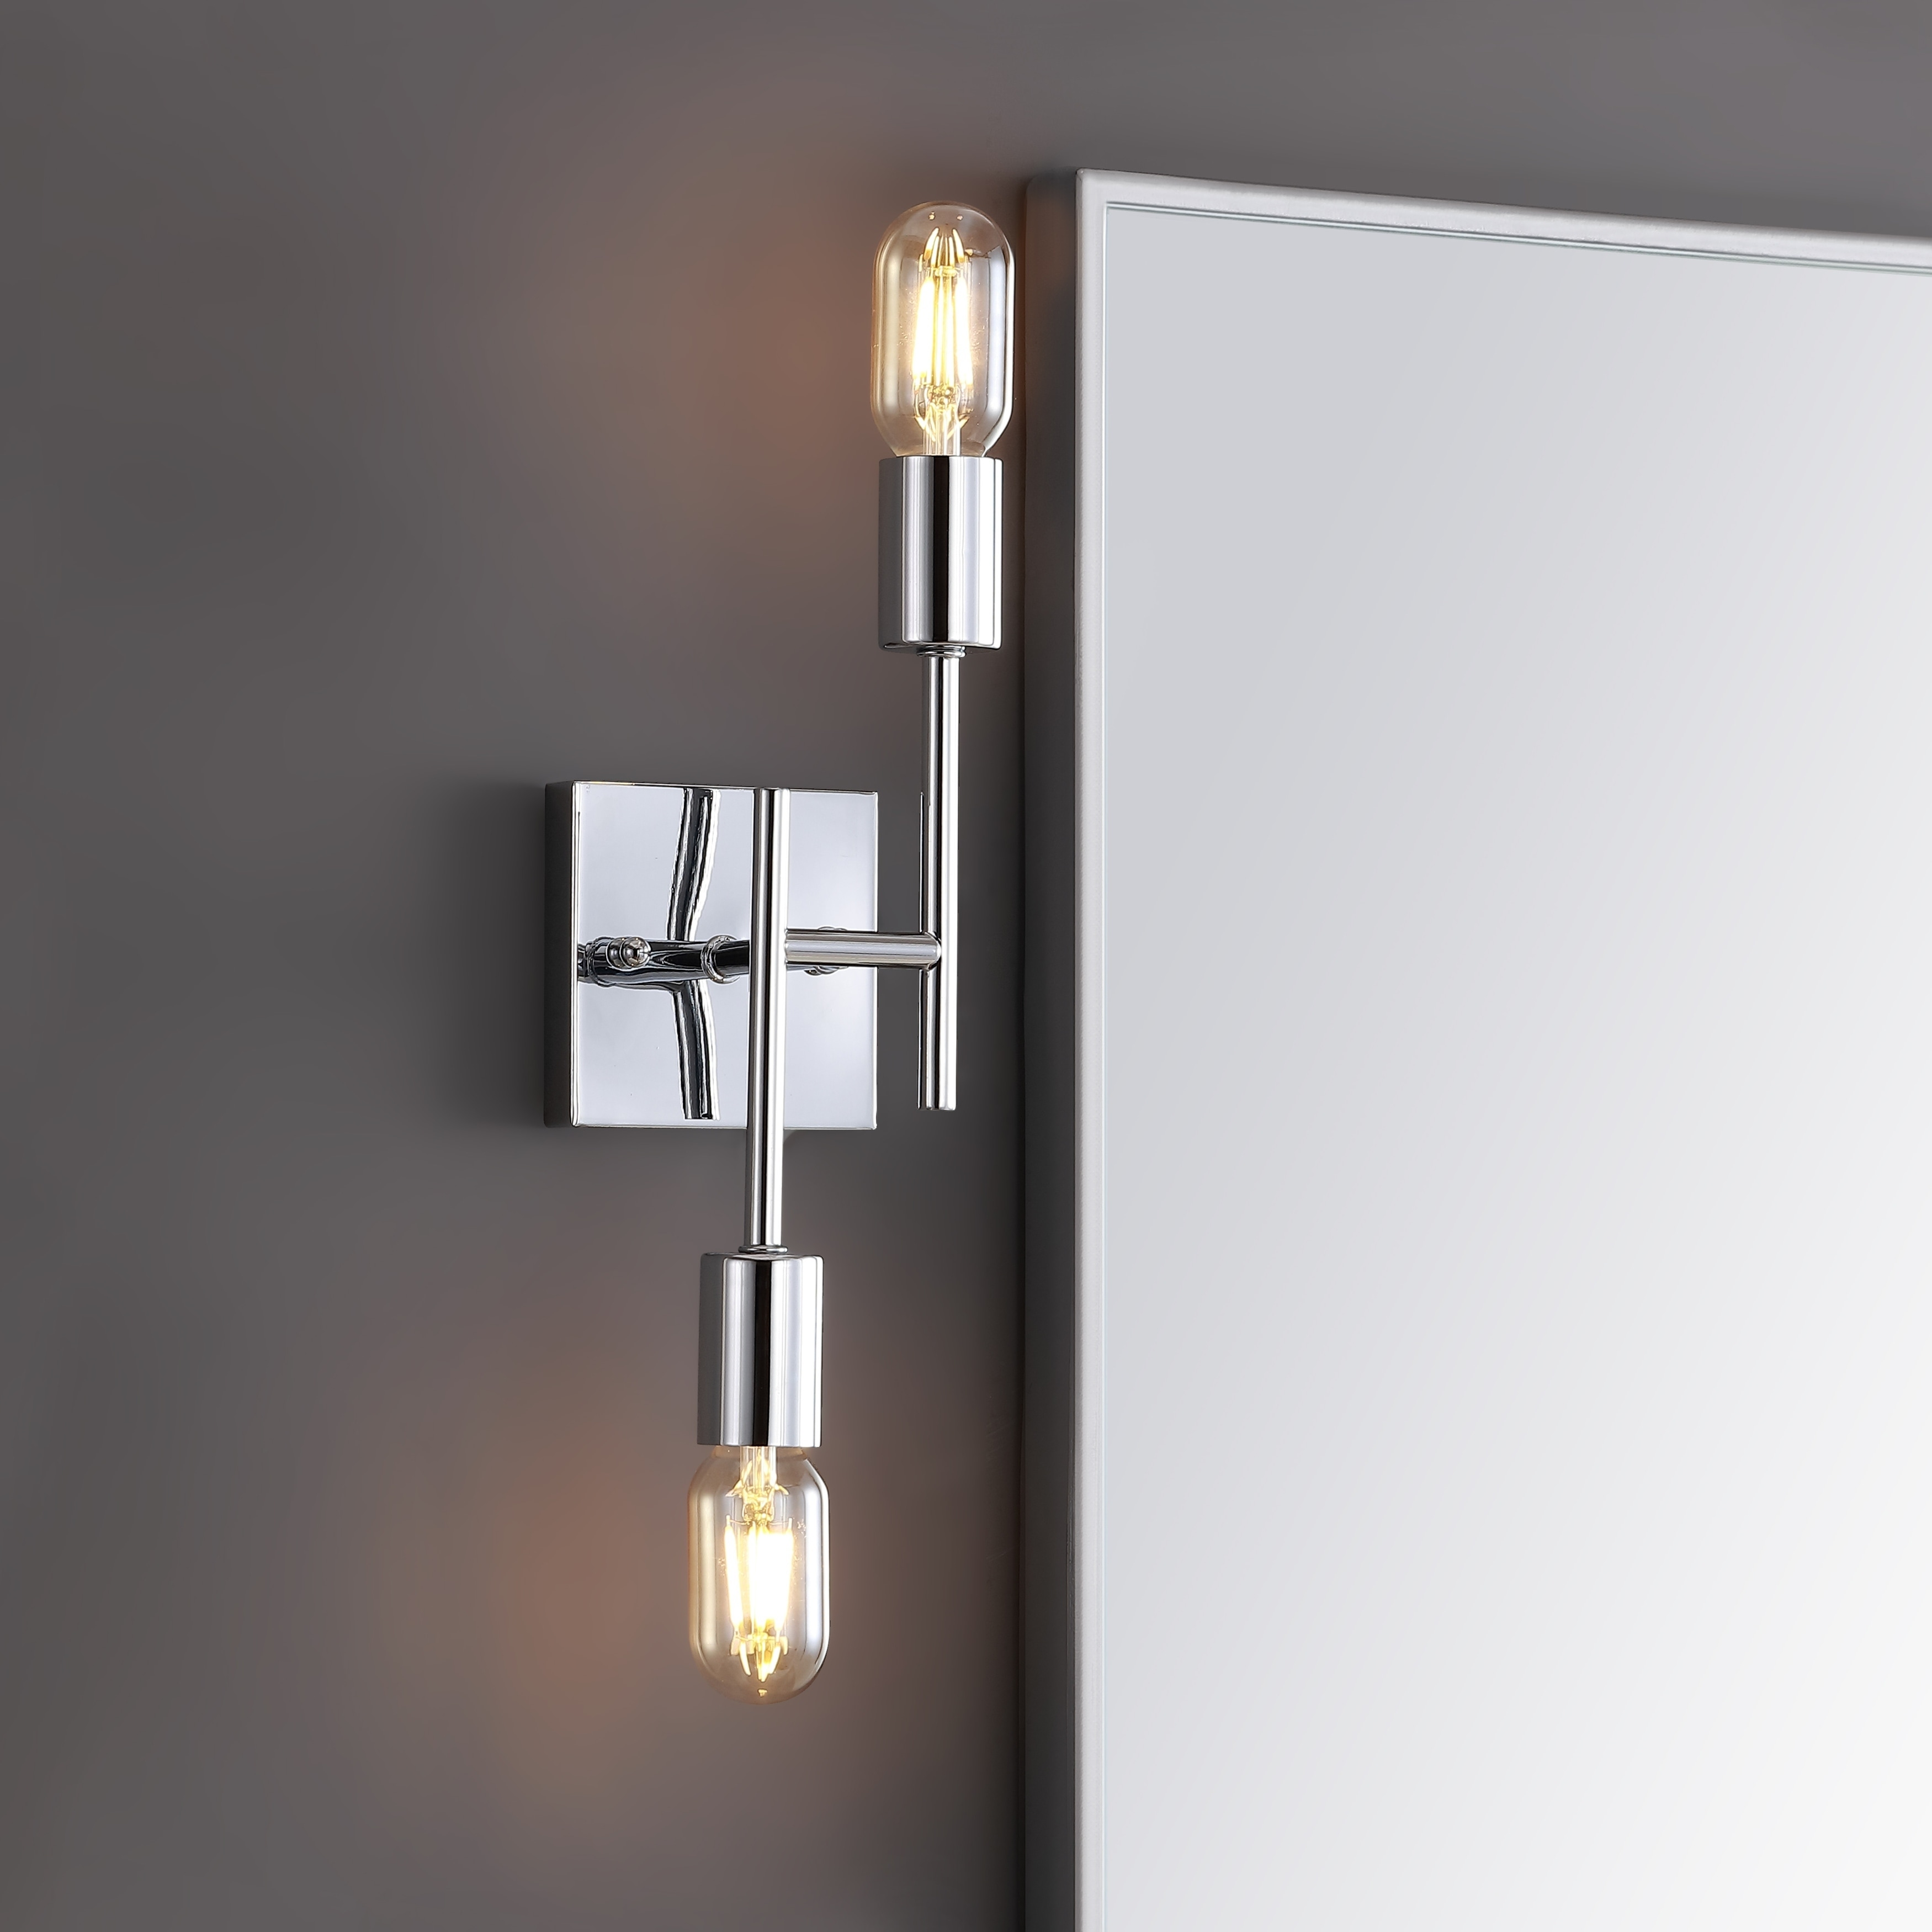 Turing 18 7 2 light metal led wall sconce chrome by jonathan y